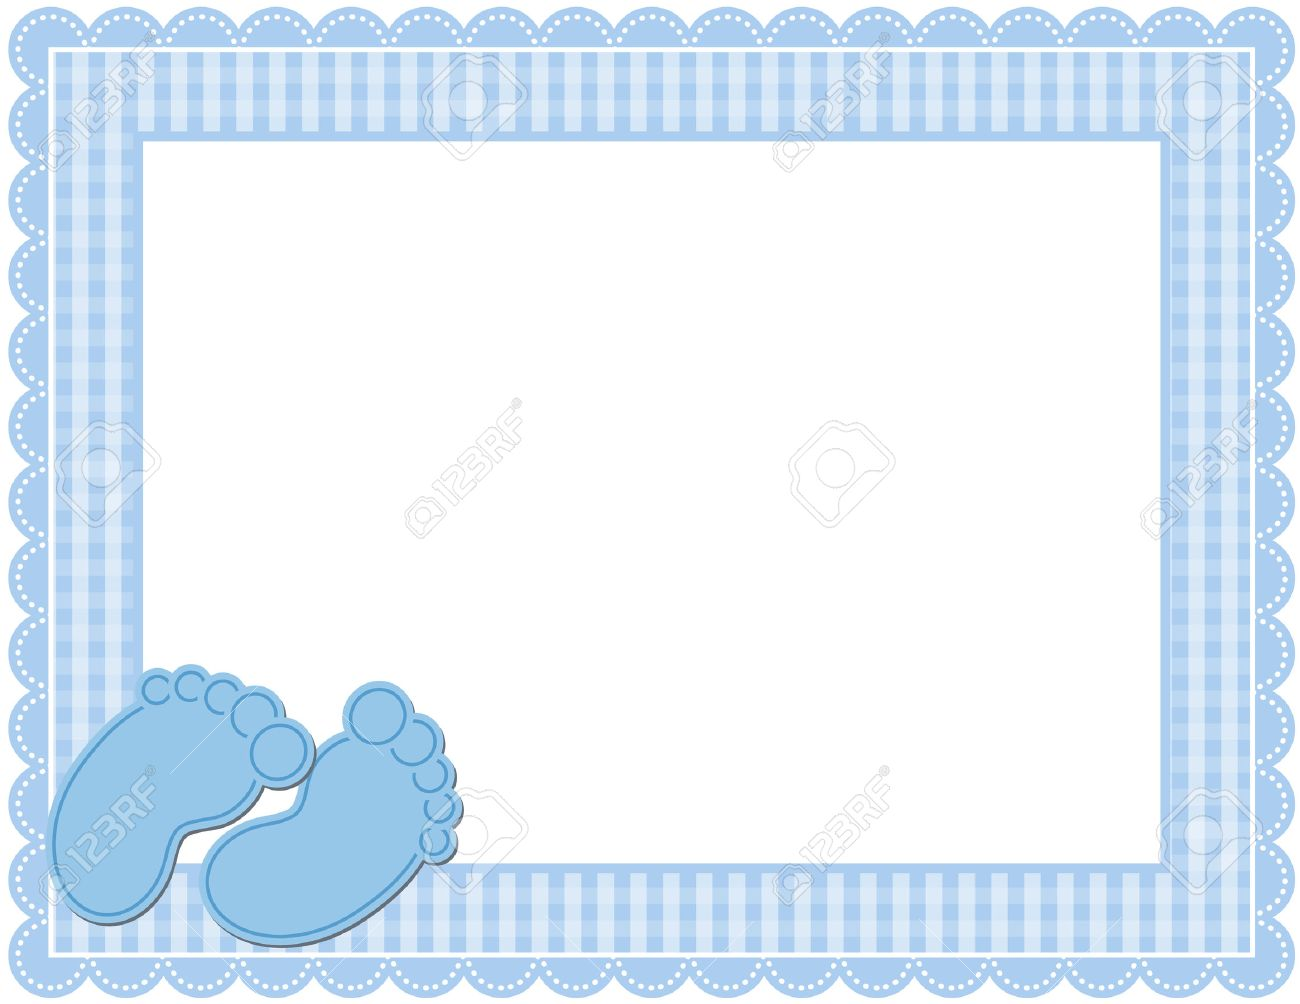 Baby Boy Gingham Frame Royalty Free Cliparts, Vectors, And Stock ...